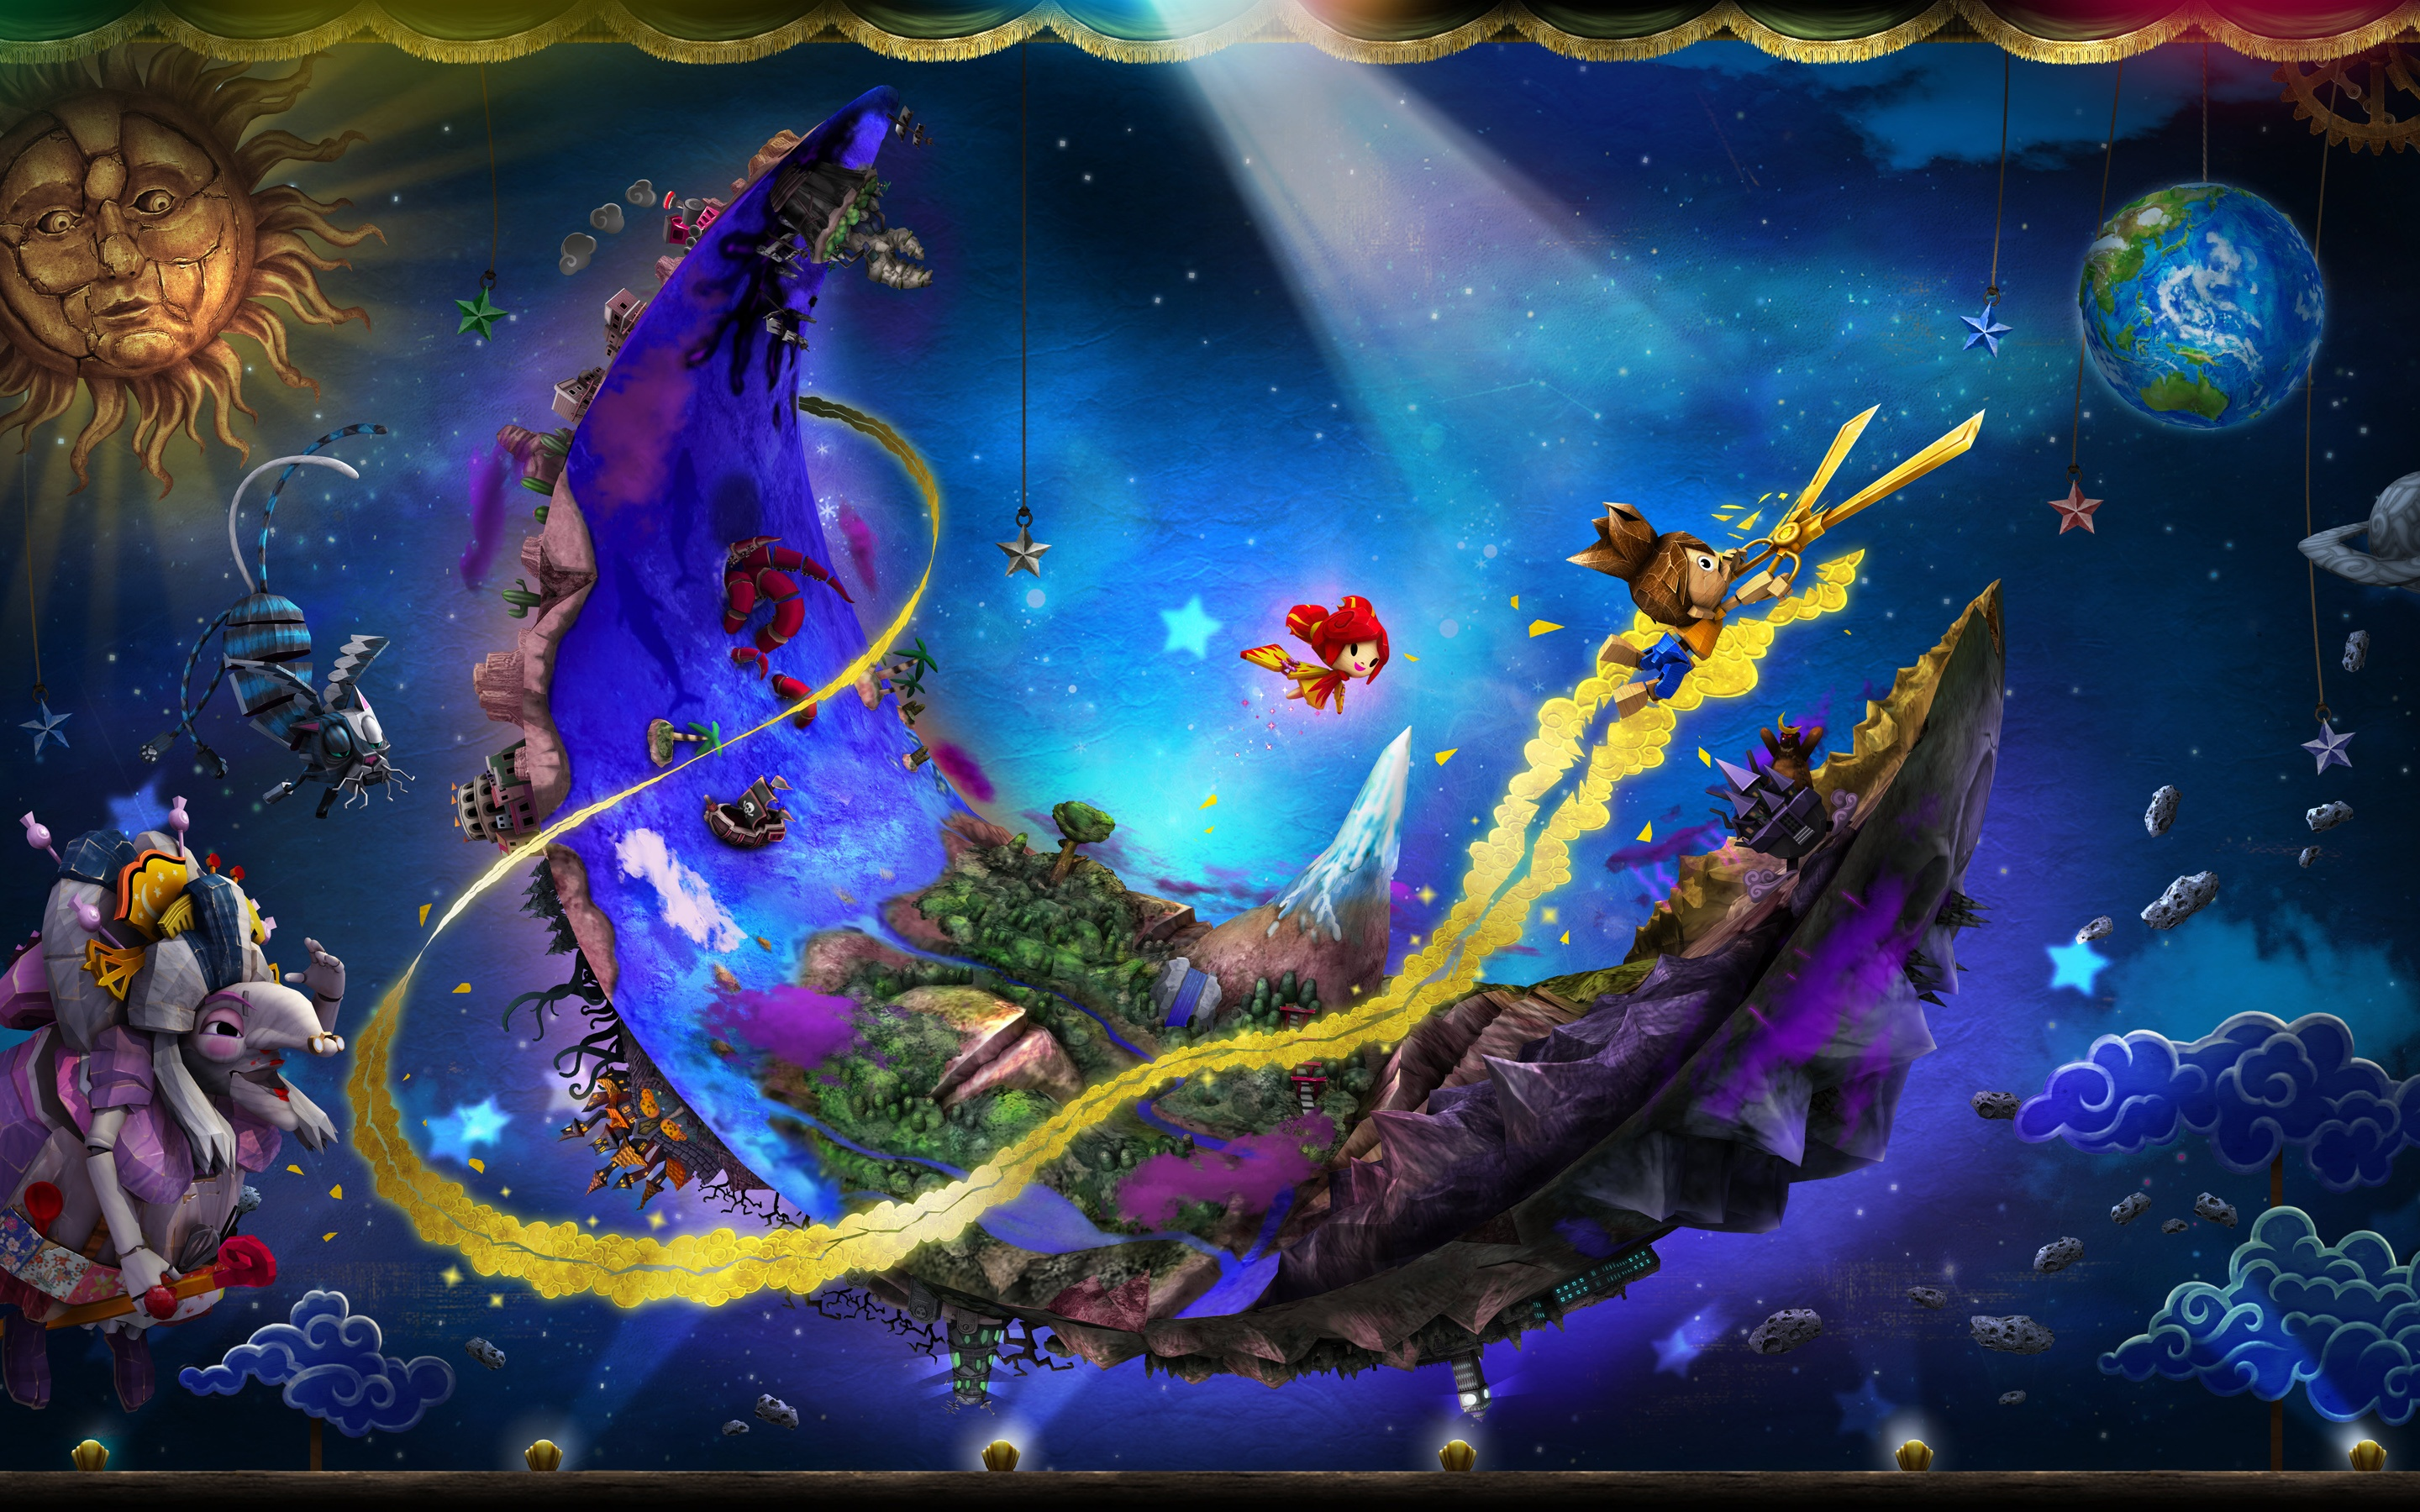 Wallpaper download ps3 - Puppeteer Ps3 Game